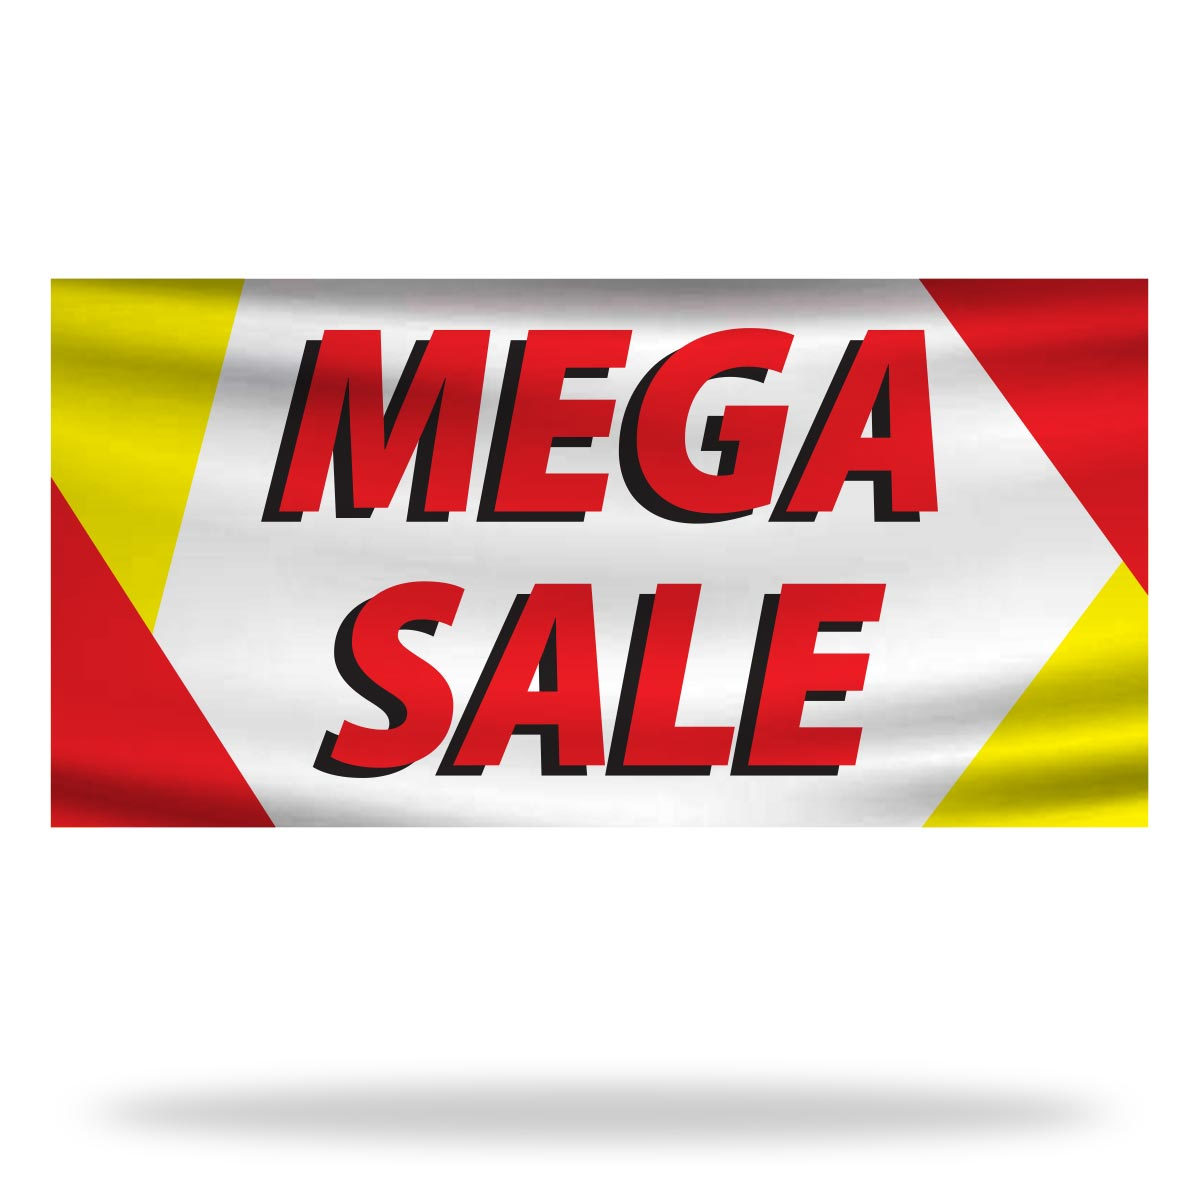 Sale Flags & Banners Design 01